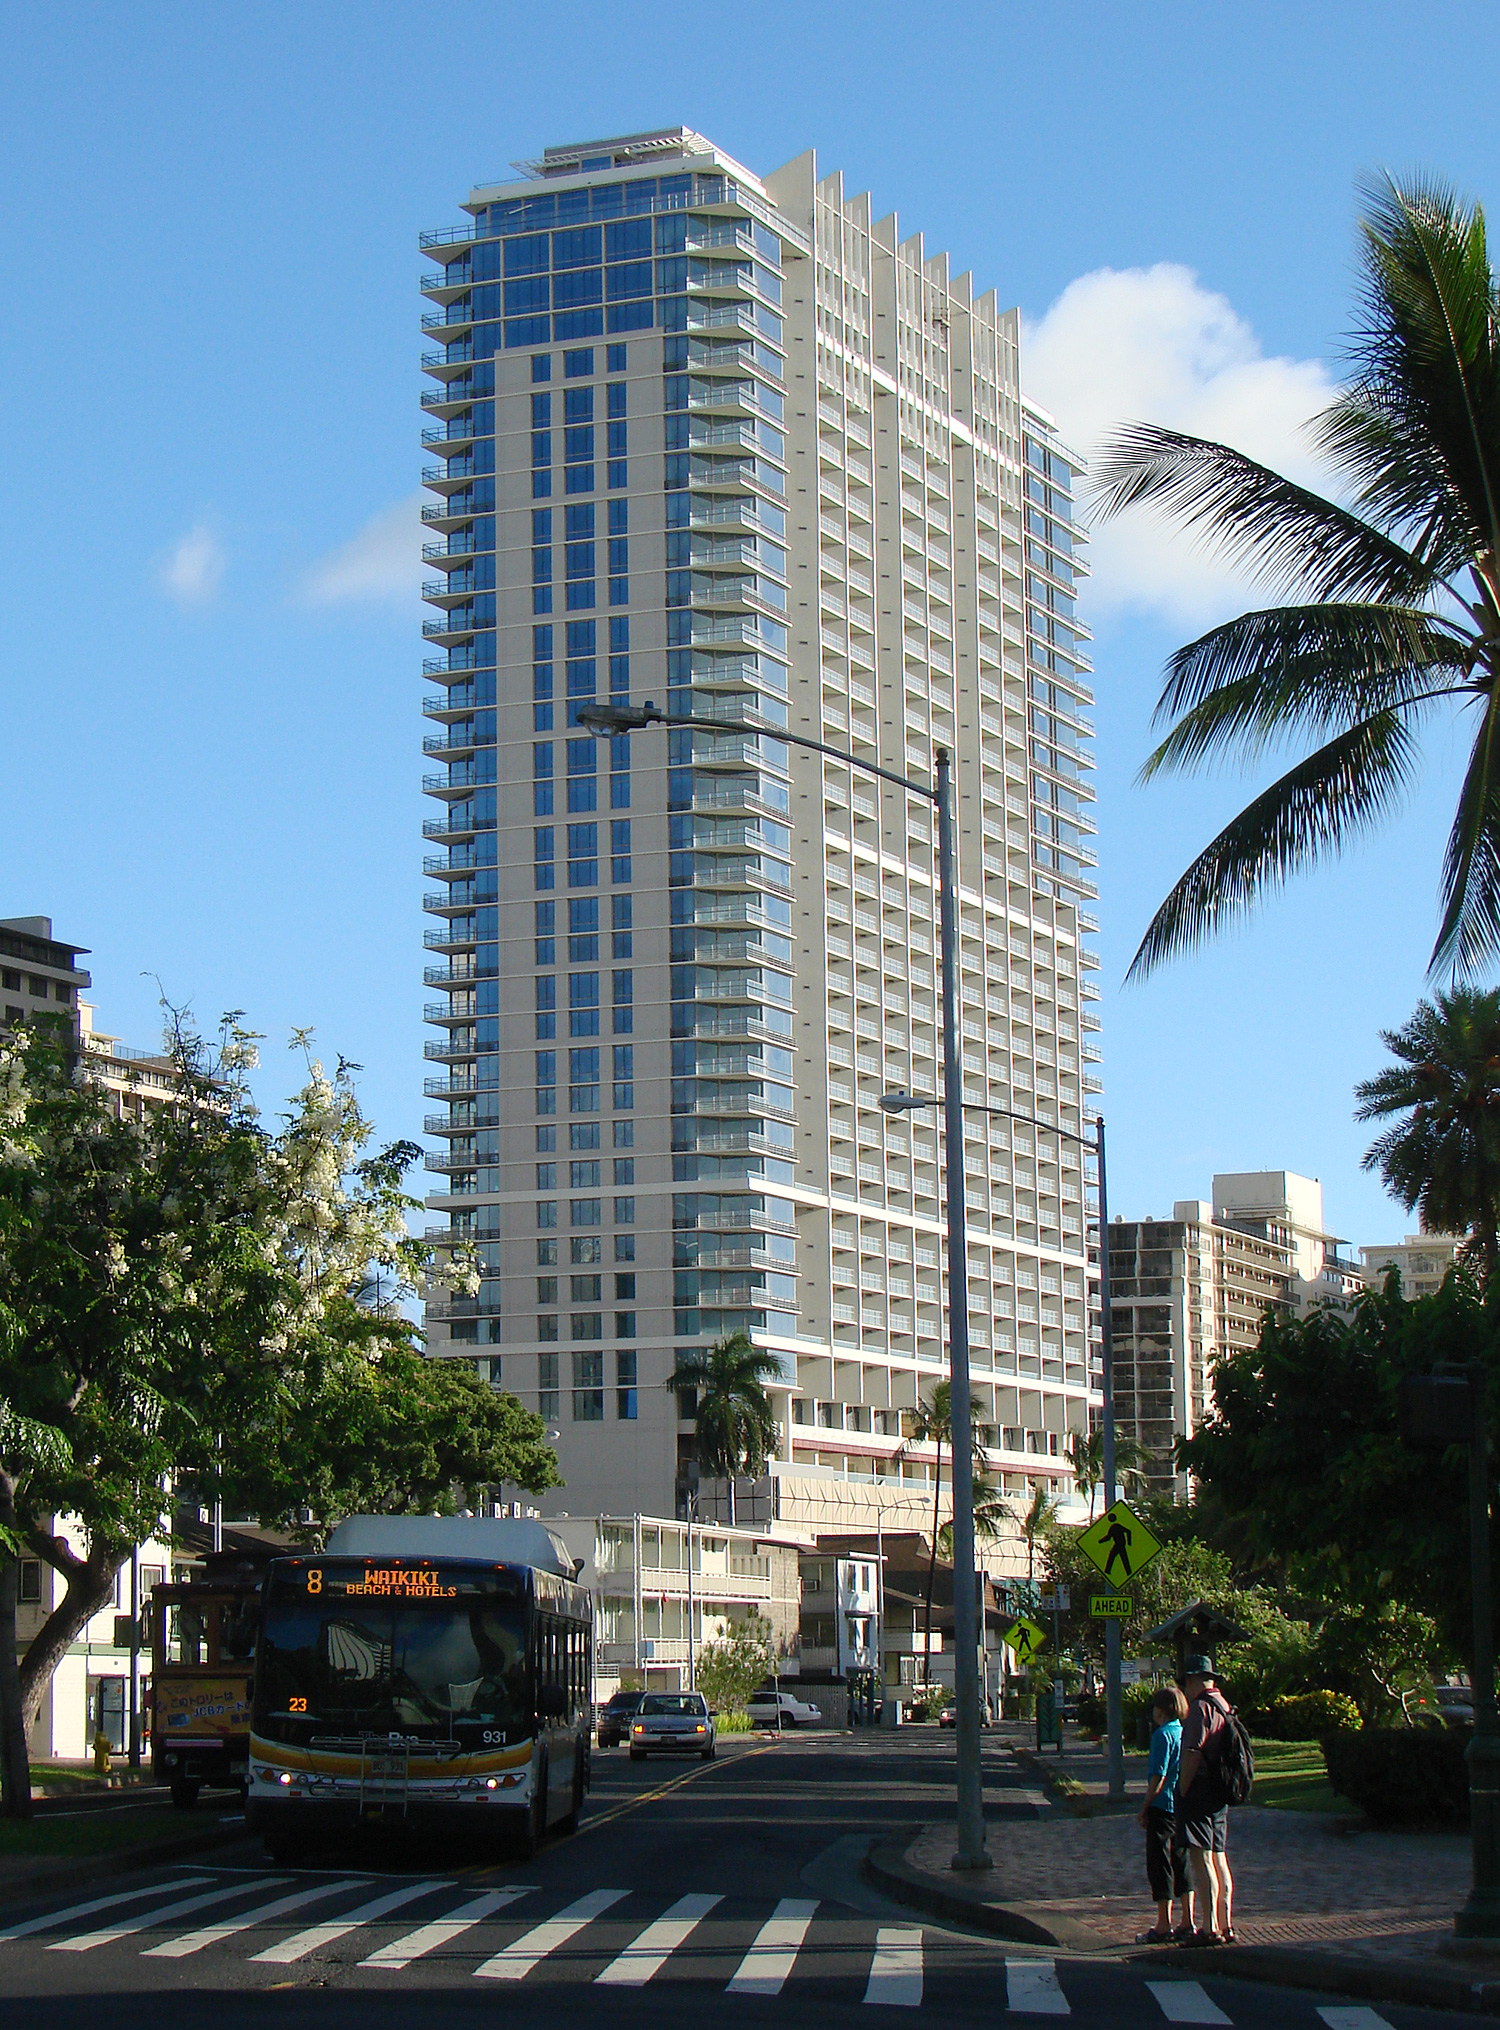 Trump Tower Waikiki | Luxury Condos for Sale in Honolulu, HI |Trump Tower Waikiki Hotel